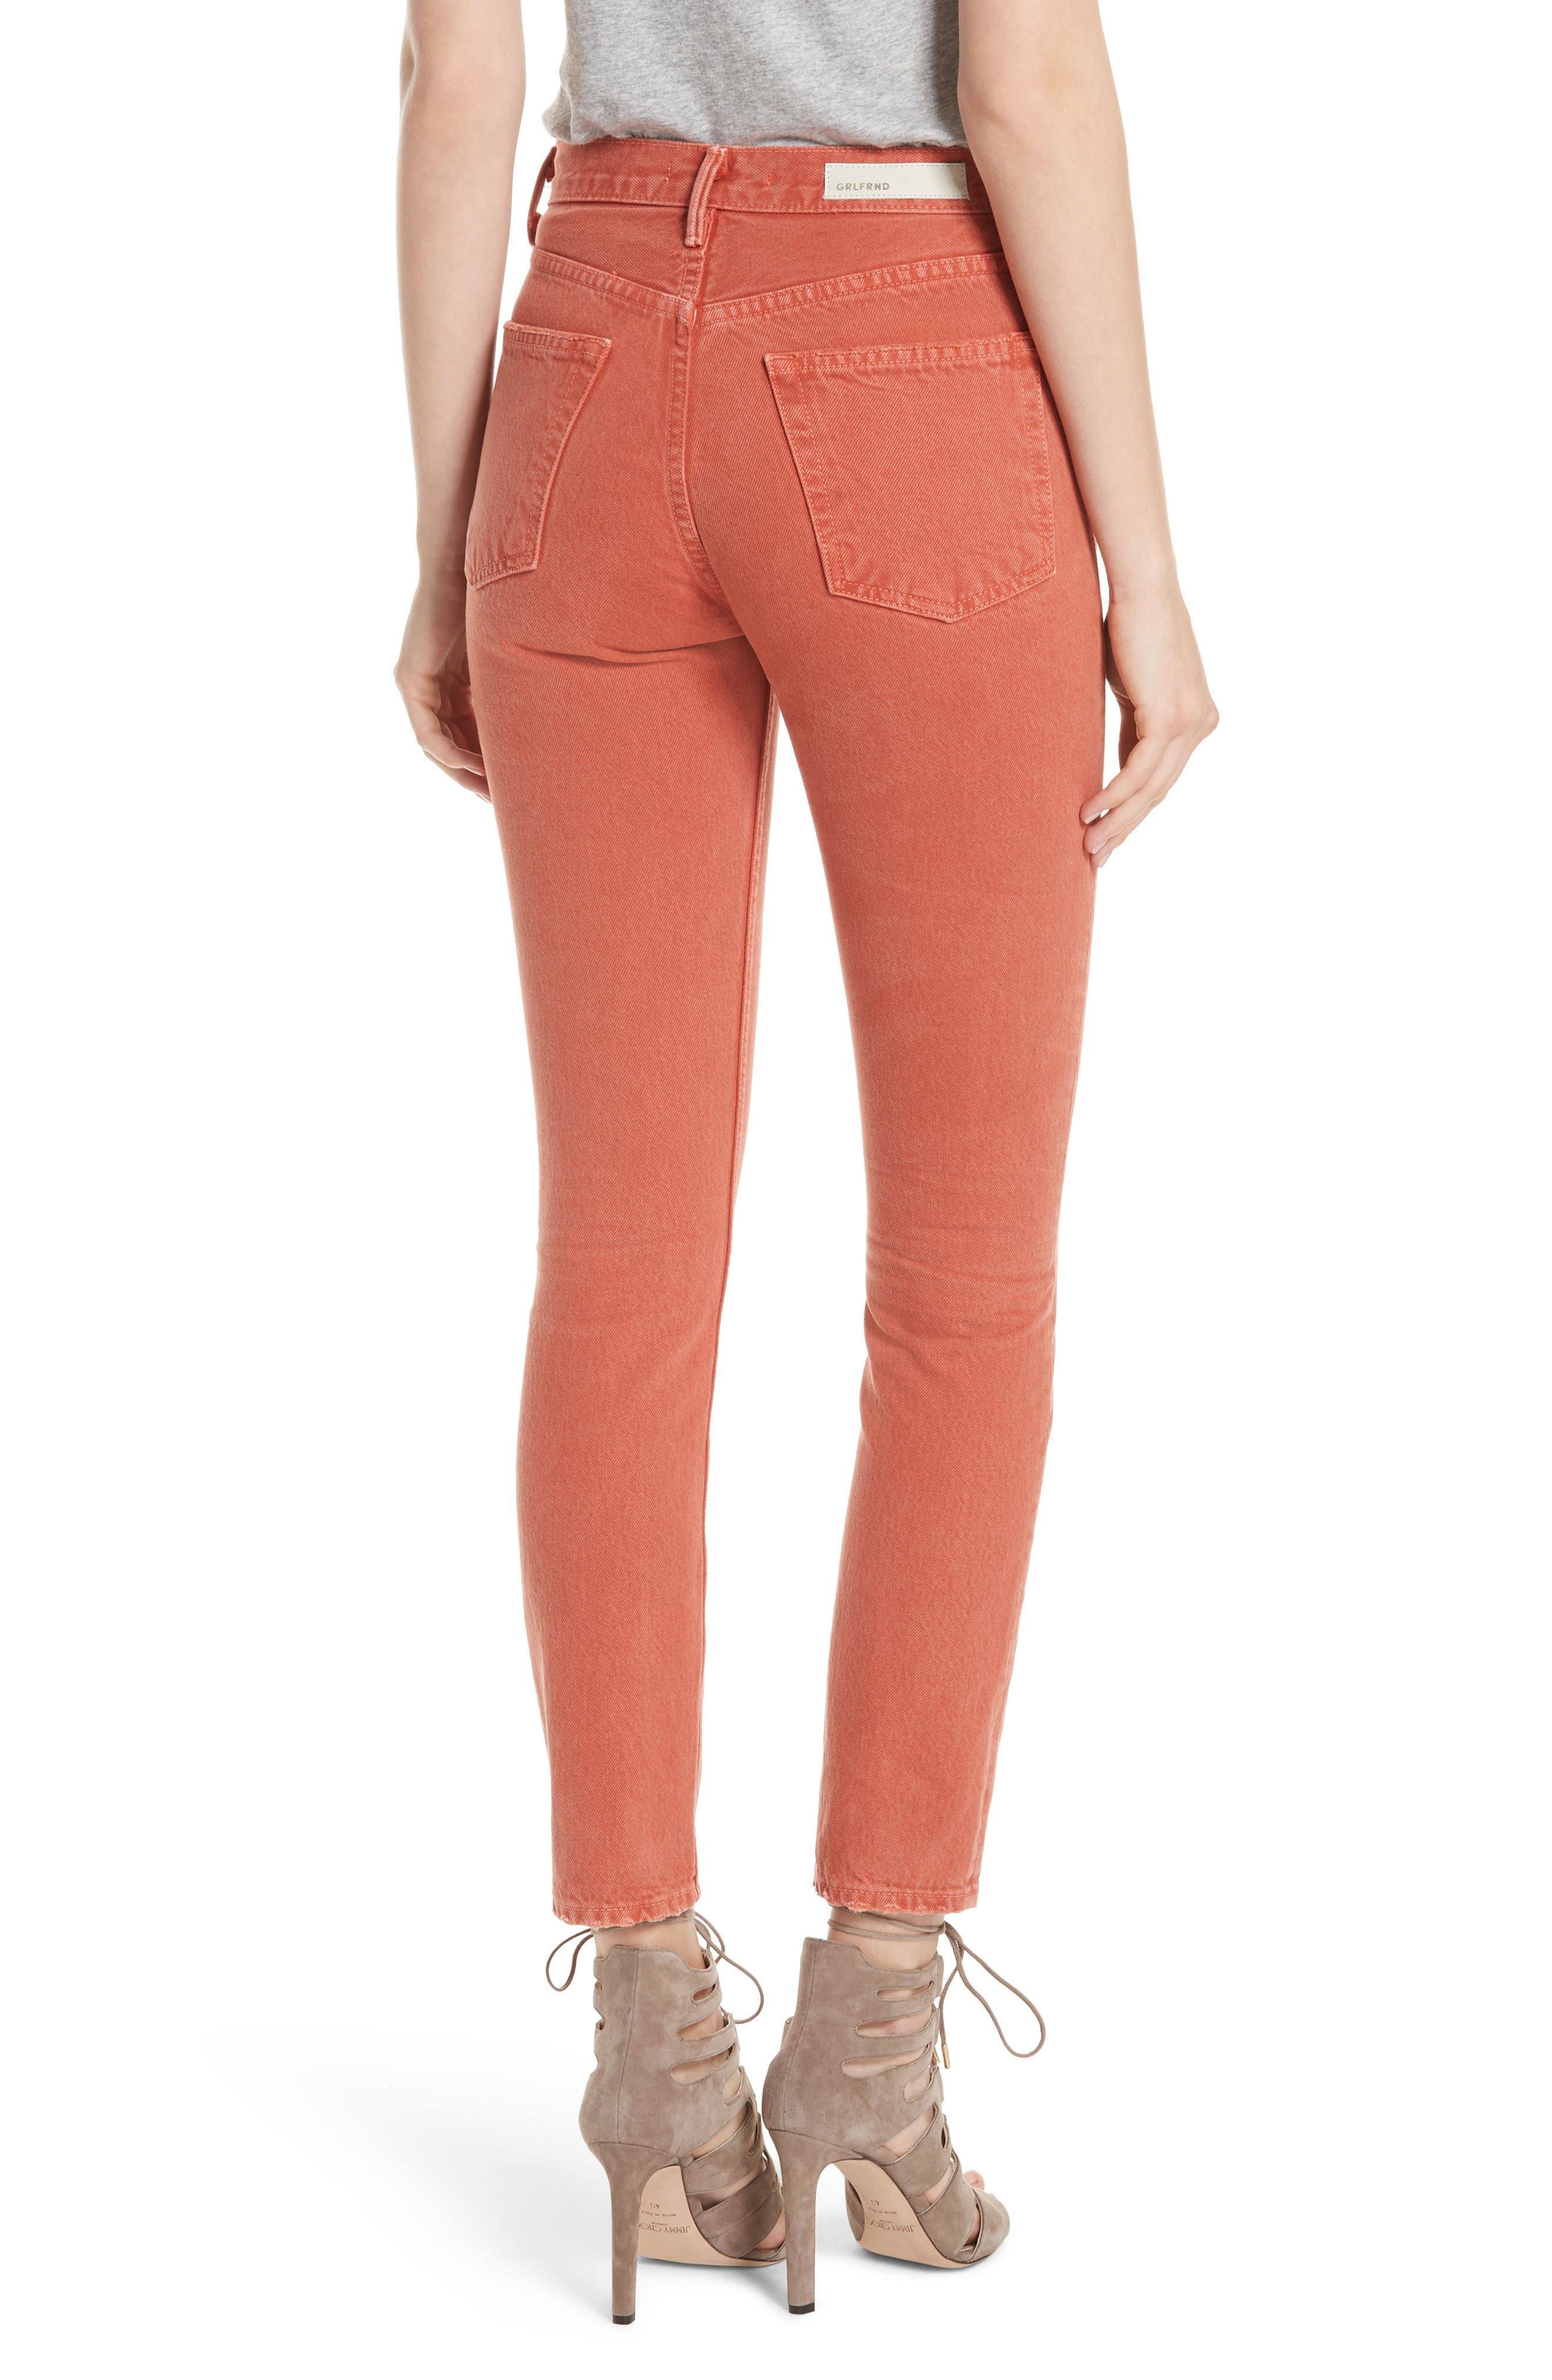 Karolina High Waist Skinny Jeans,                             Alternate thumbnail 2, color,                             MARRAKECH